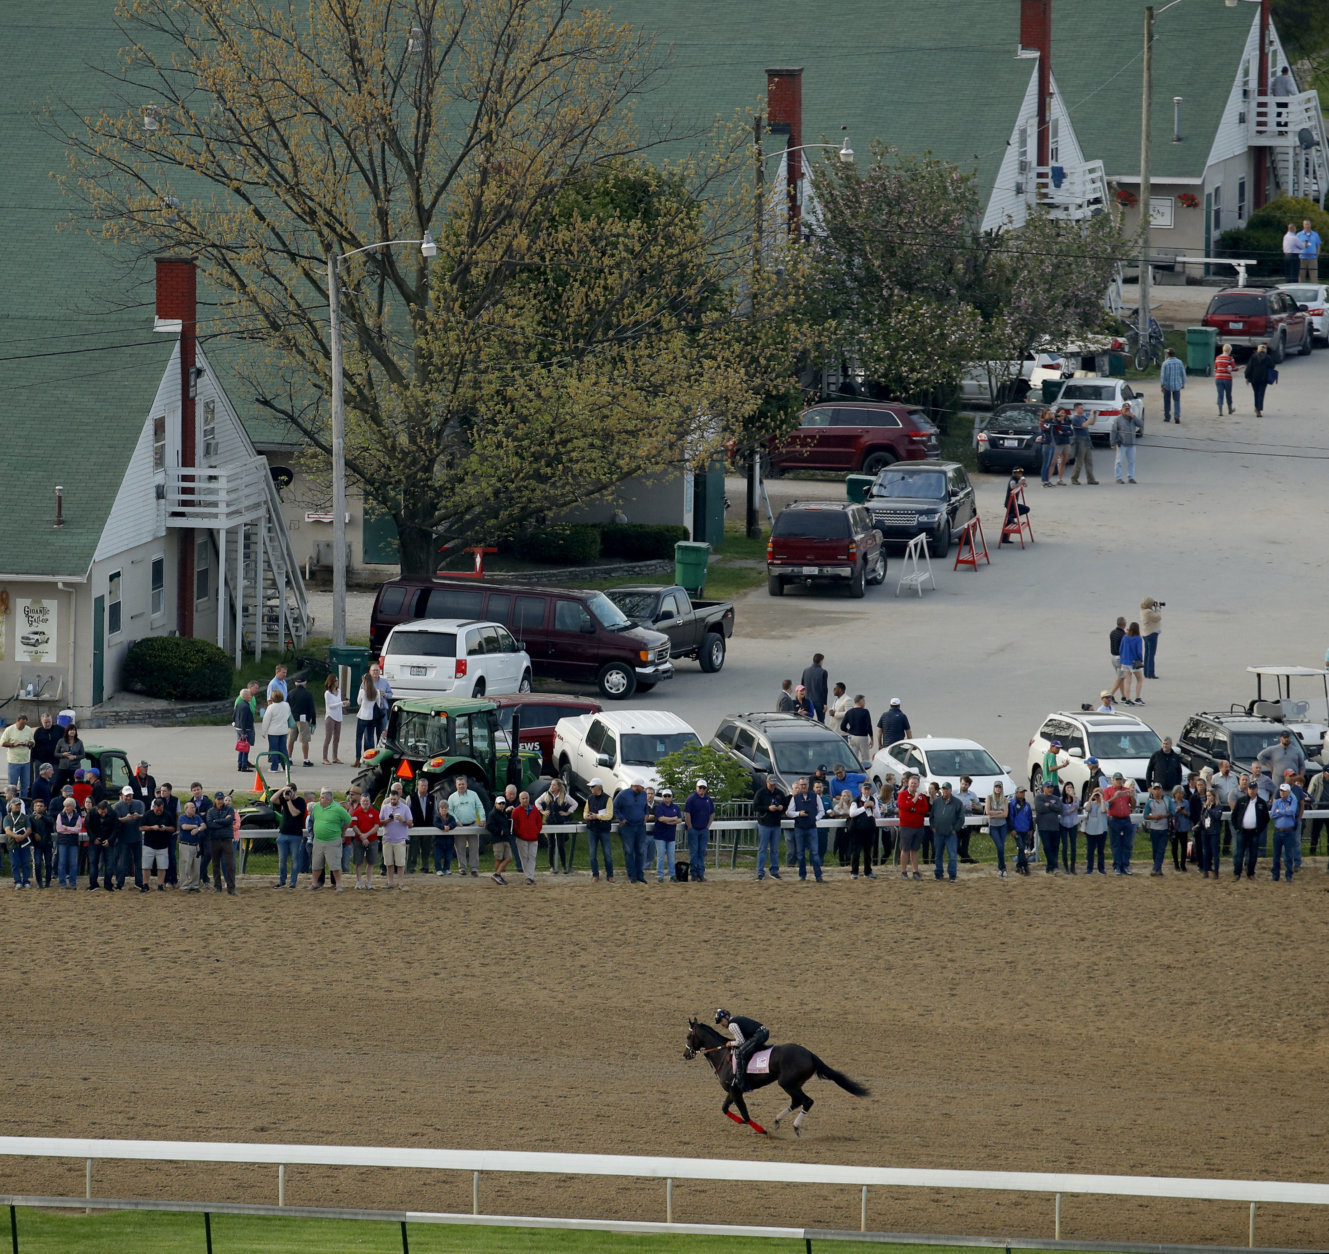 Kentucky Oaks entrant Midnight Bisou runs during a morning workout for Oaks and Kentucky Derby entrants at Churchill Downs Wednesday, May 2, 2018, in Louisville, Ky. The 144th running of the Kentucky Derby is scheduled for Saturday, May 5. (AP Photo/Charlie Riedel)